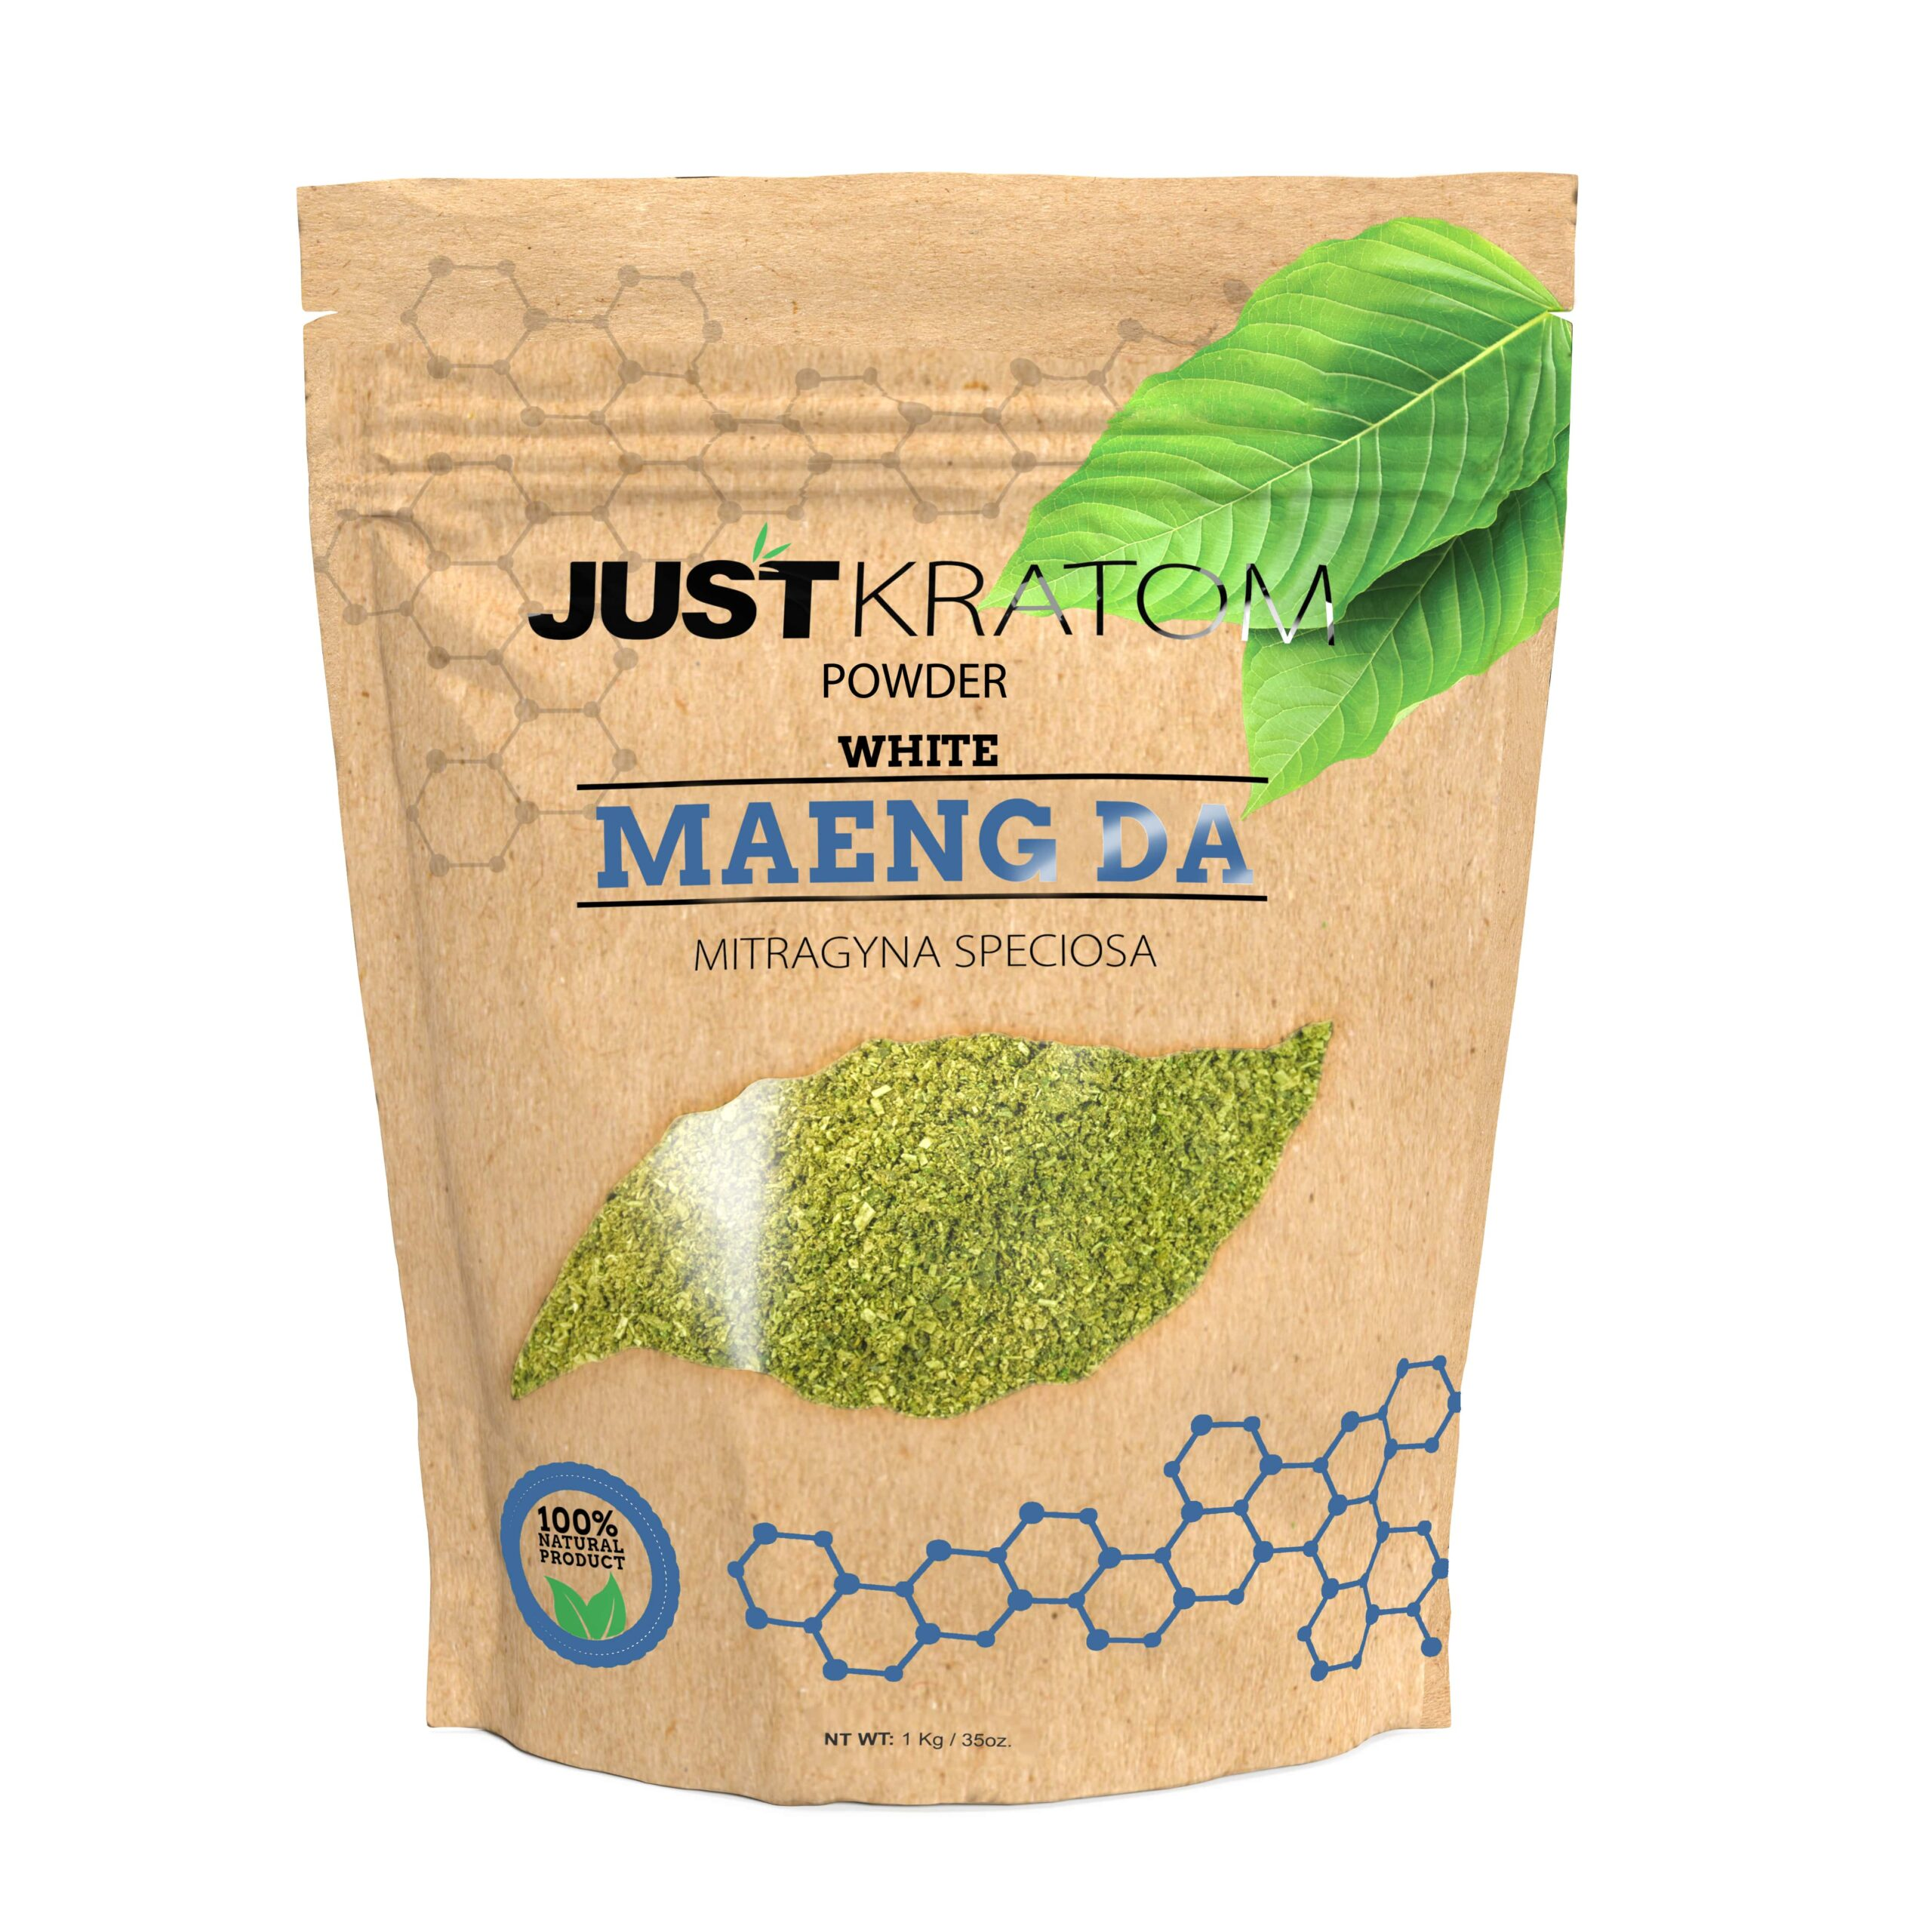 Where To Buy Kratom In Michigan